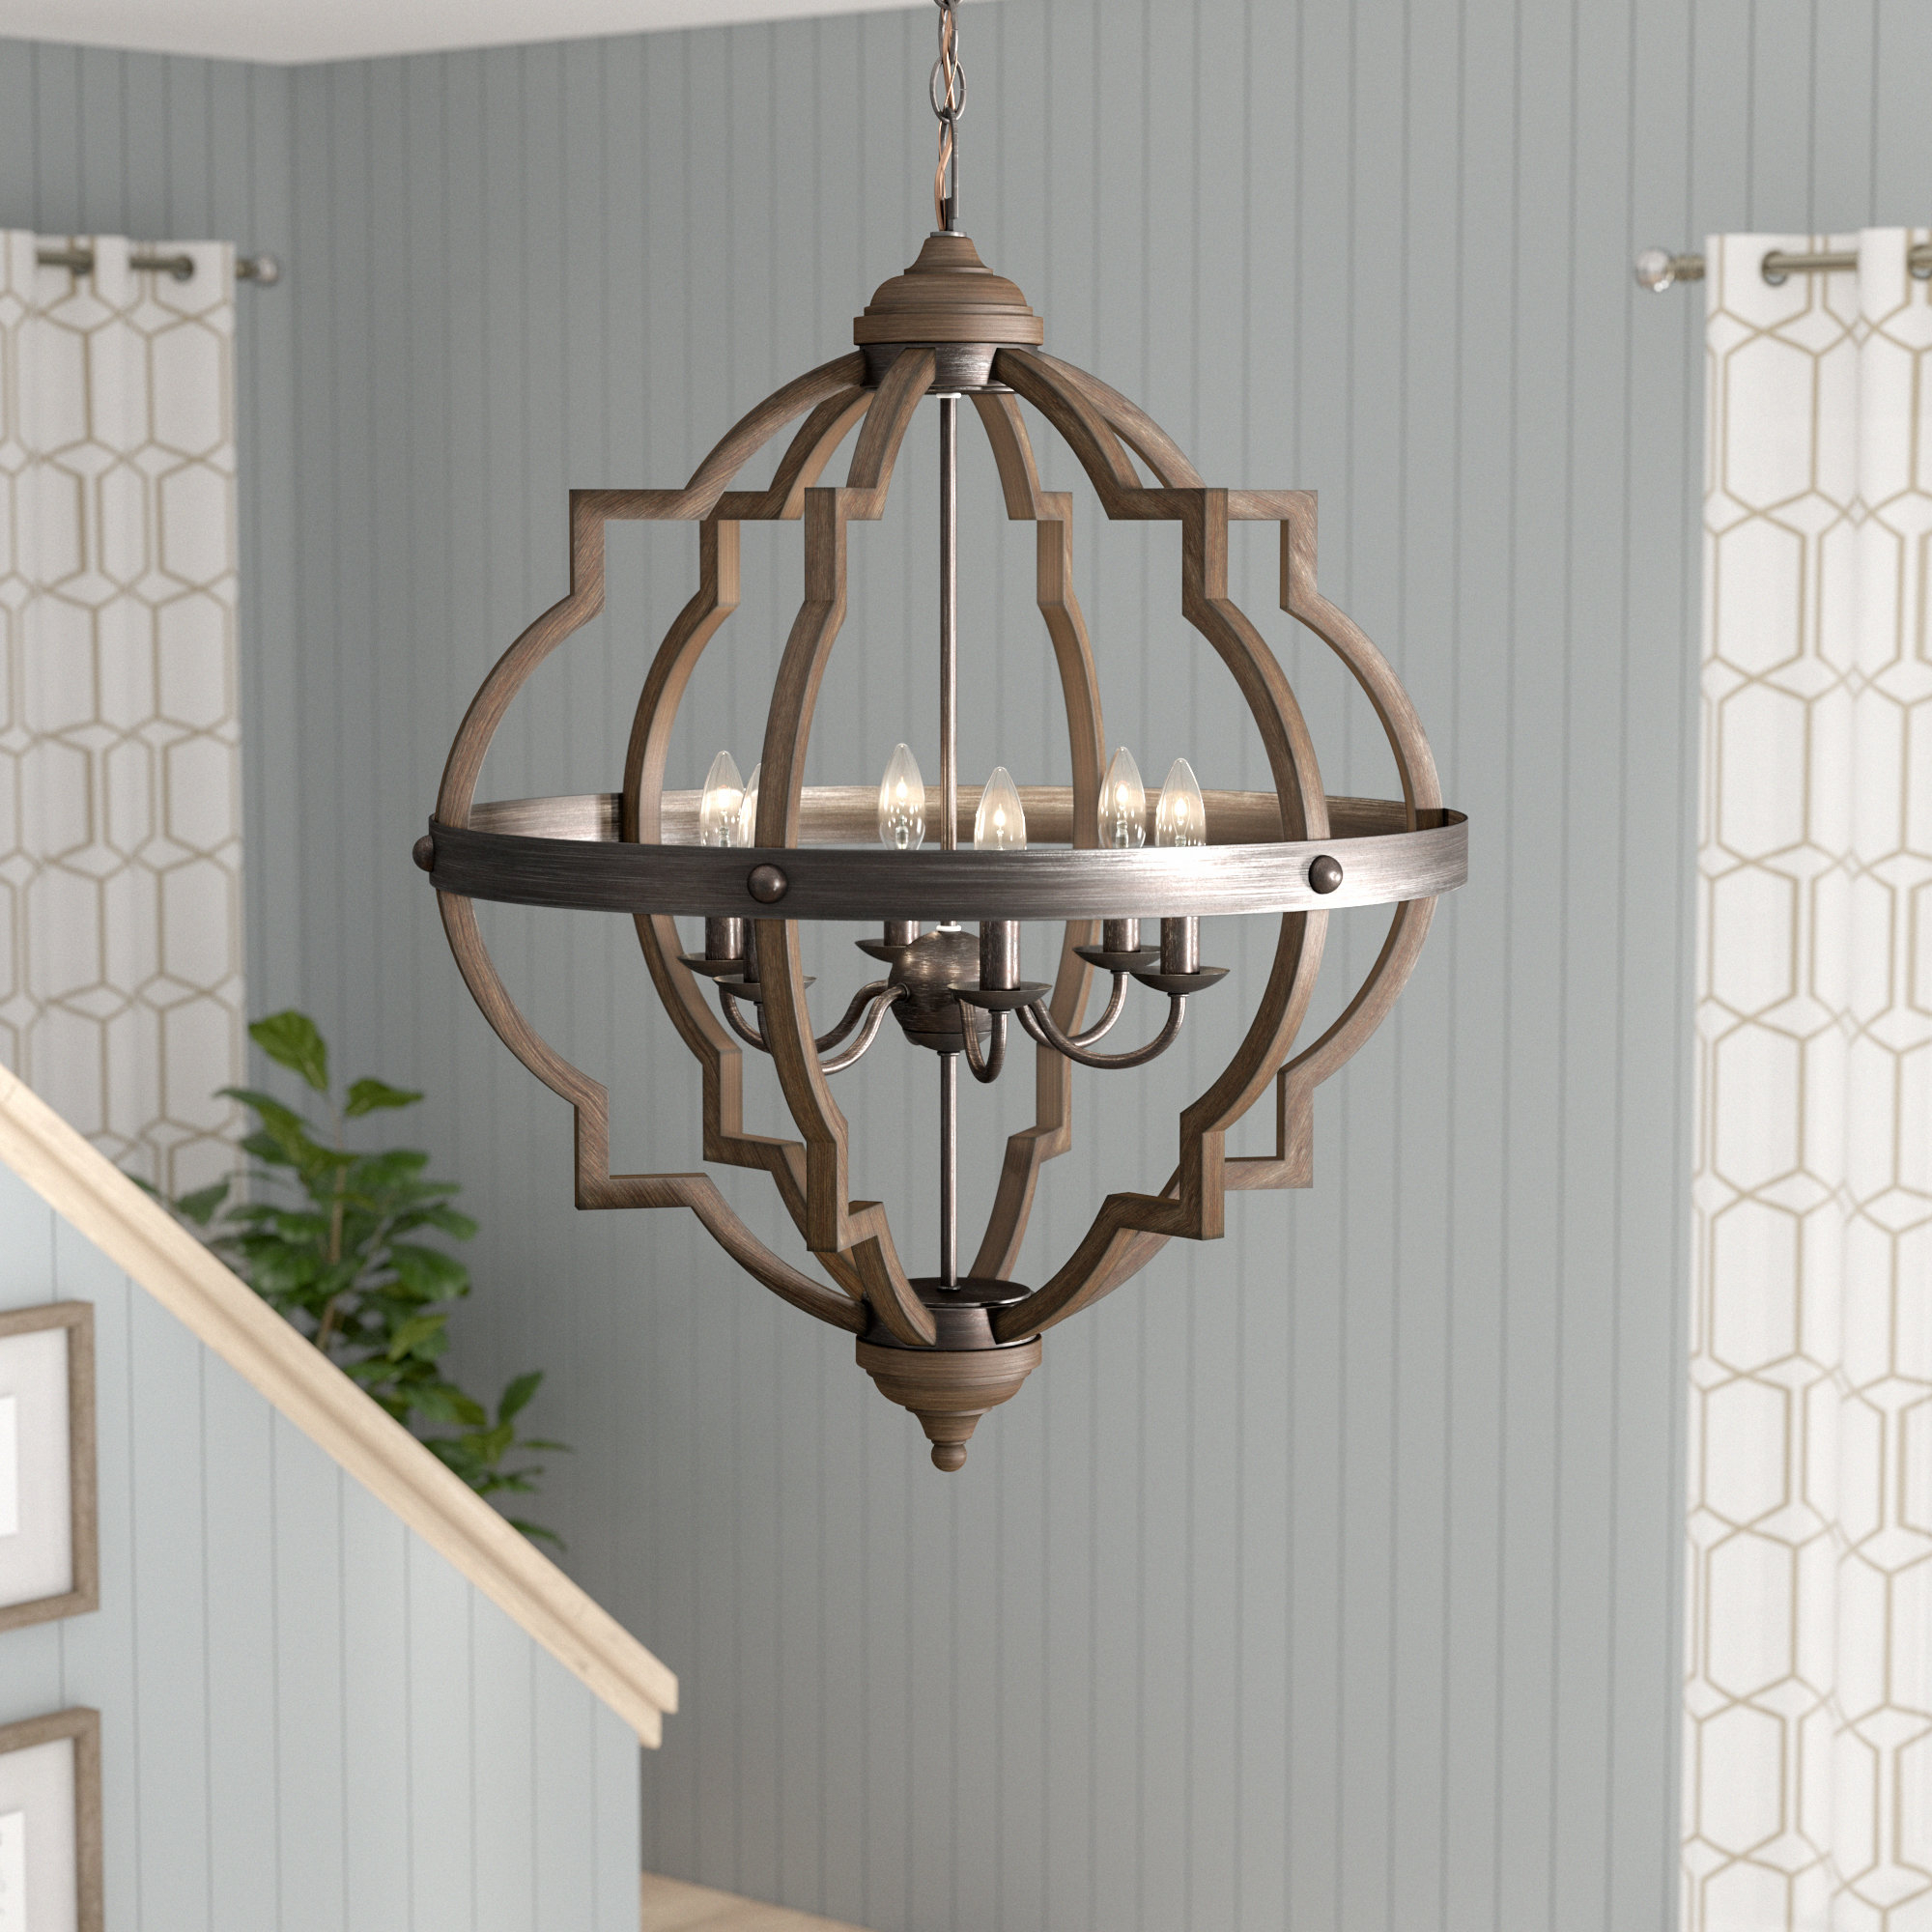 2020 Kaycee 4 Light Geometric Chandeliers Intended For Bennington 6 Light Candle Style Chandelier (View 2 of 25)